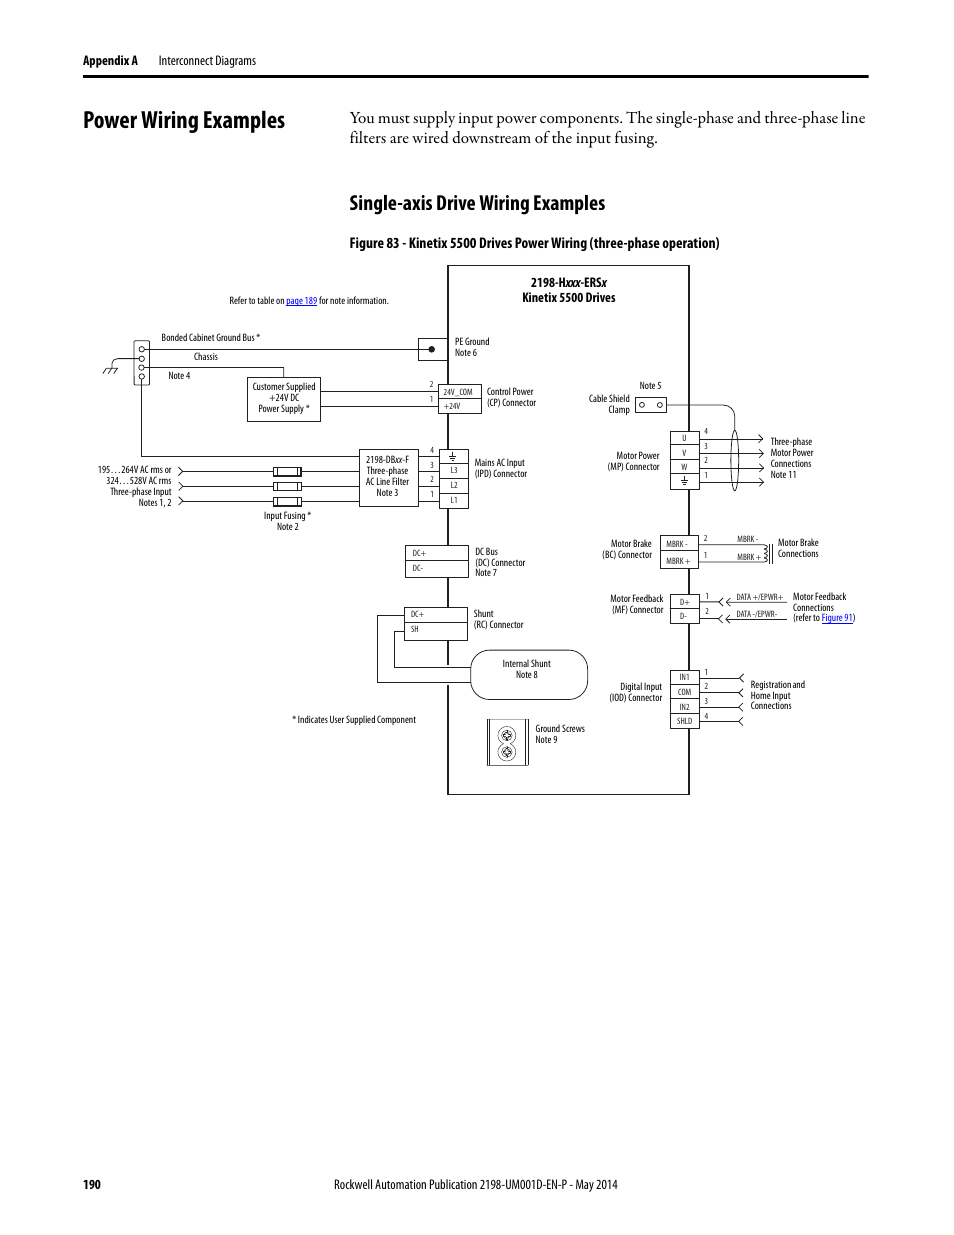 Wiring Diagram For 82 041 Rockwell Motor Books Of 1999 Yamaha Grizzly 600 Servo Drive 660